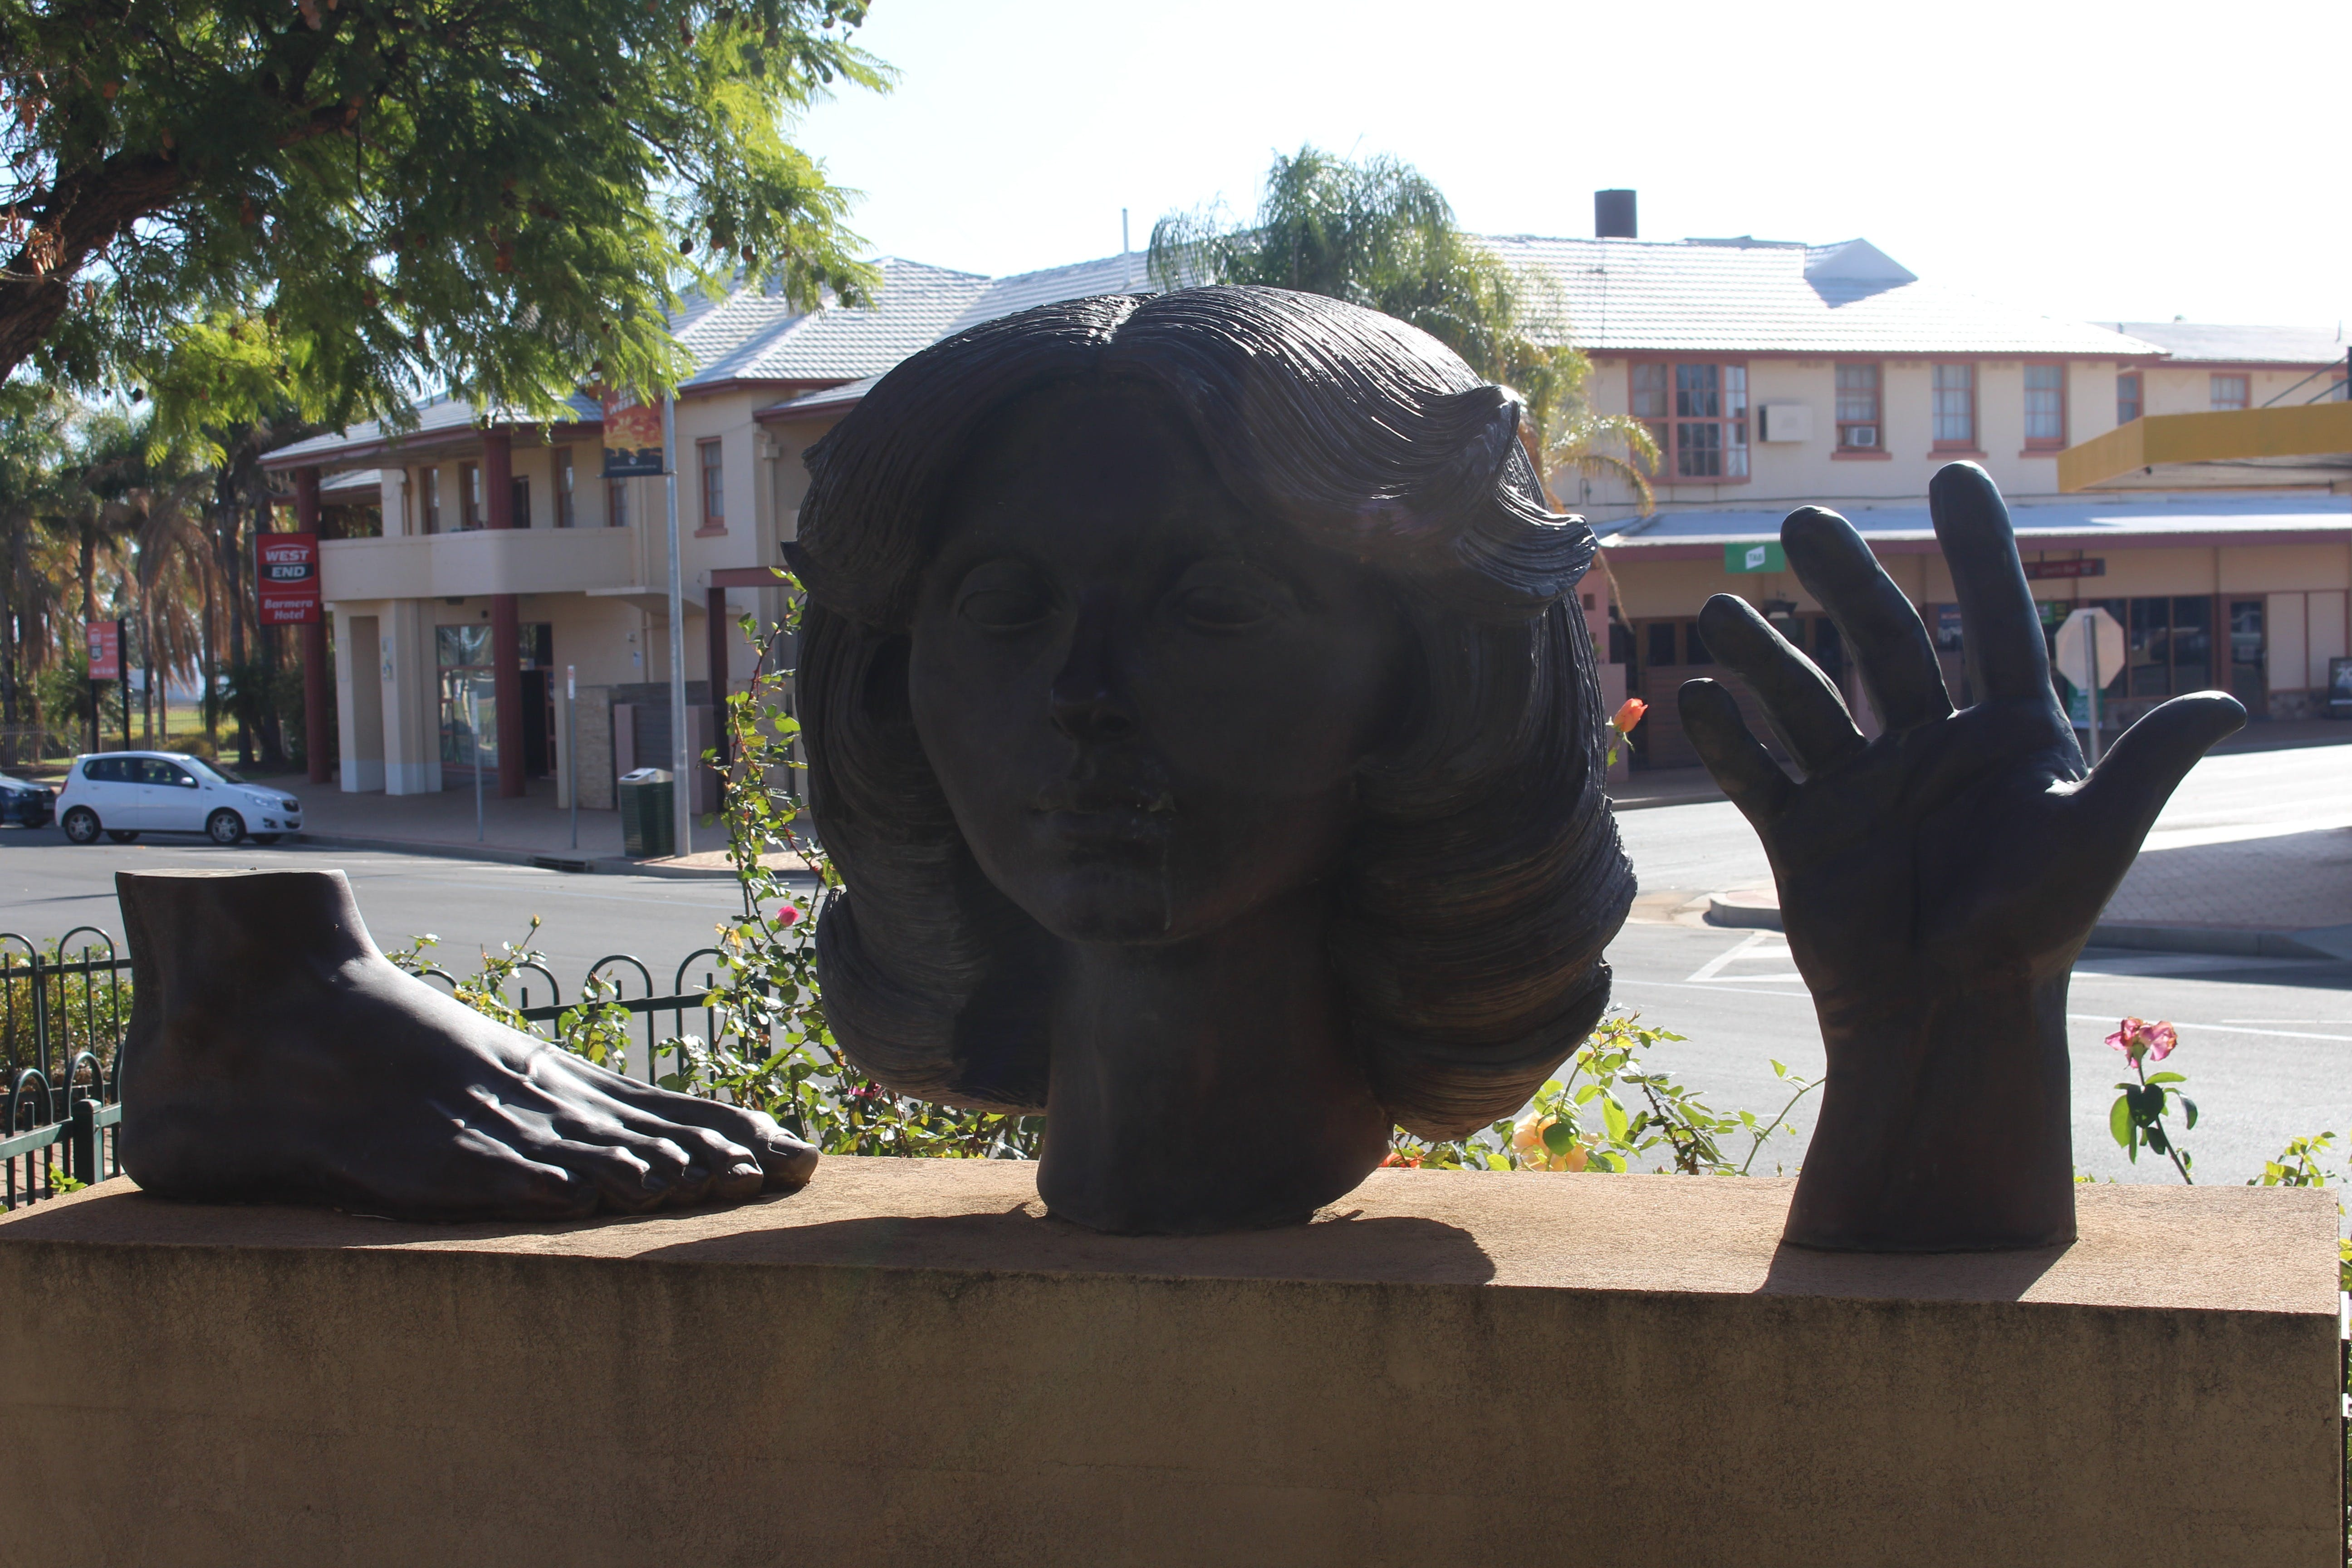 Celebration of life statue Barmera - Australia Accommodation